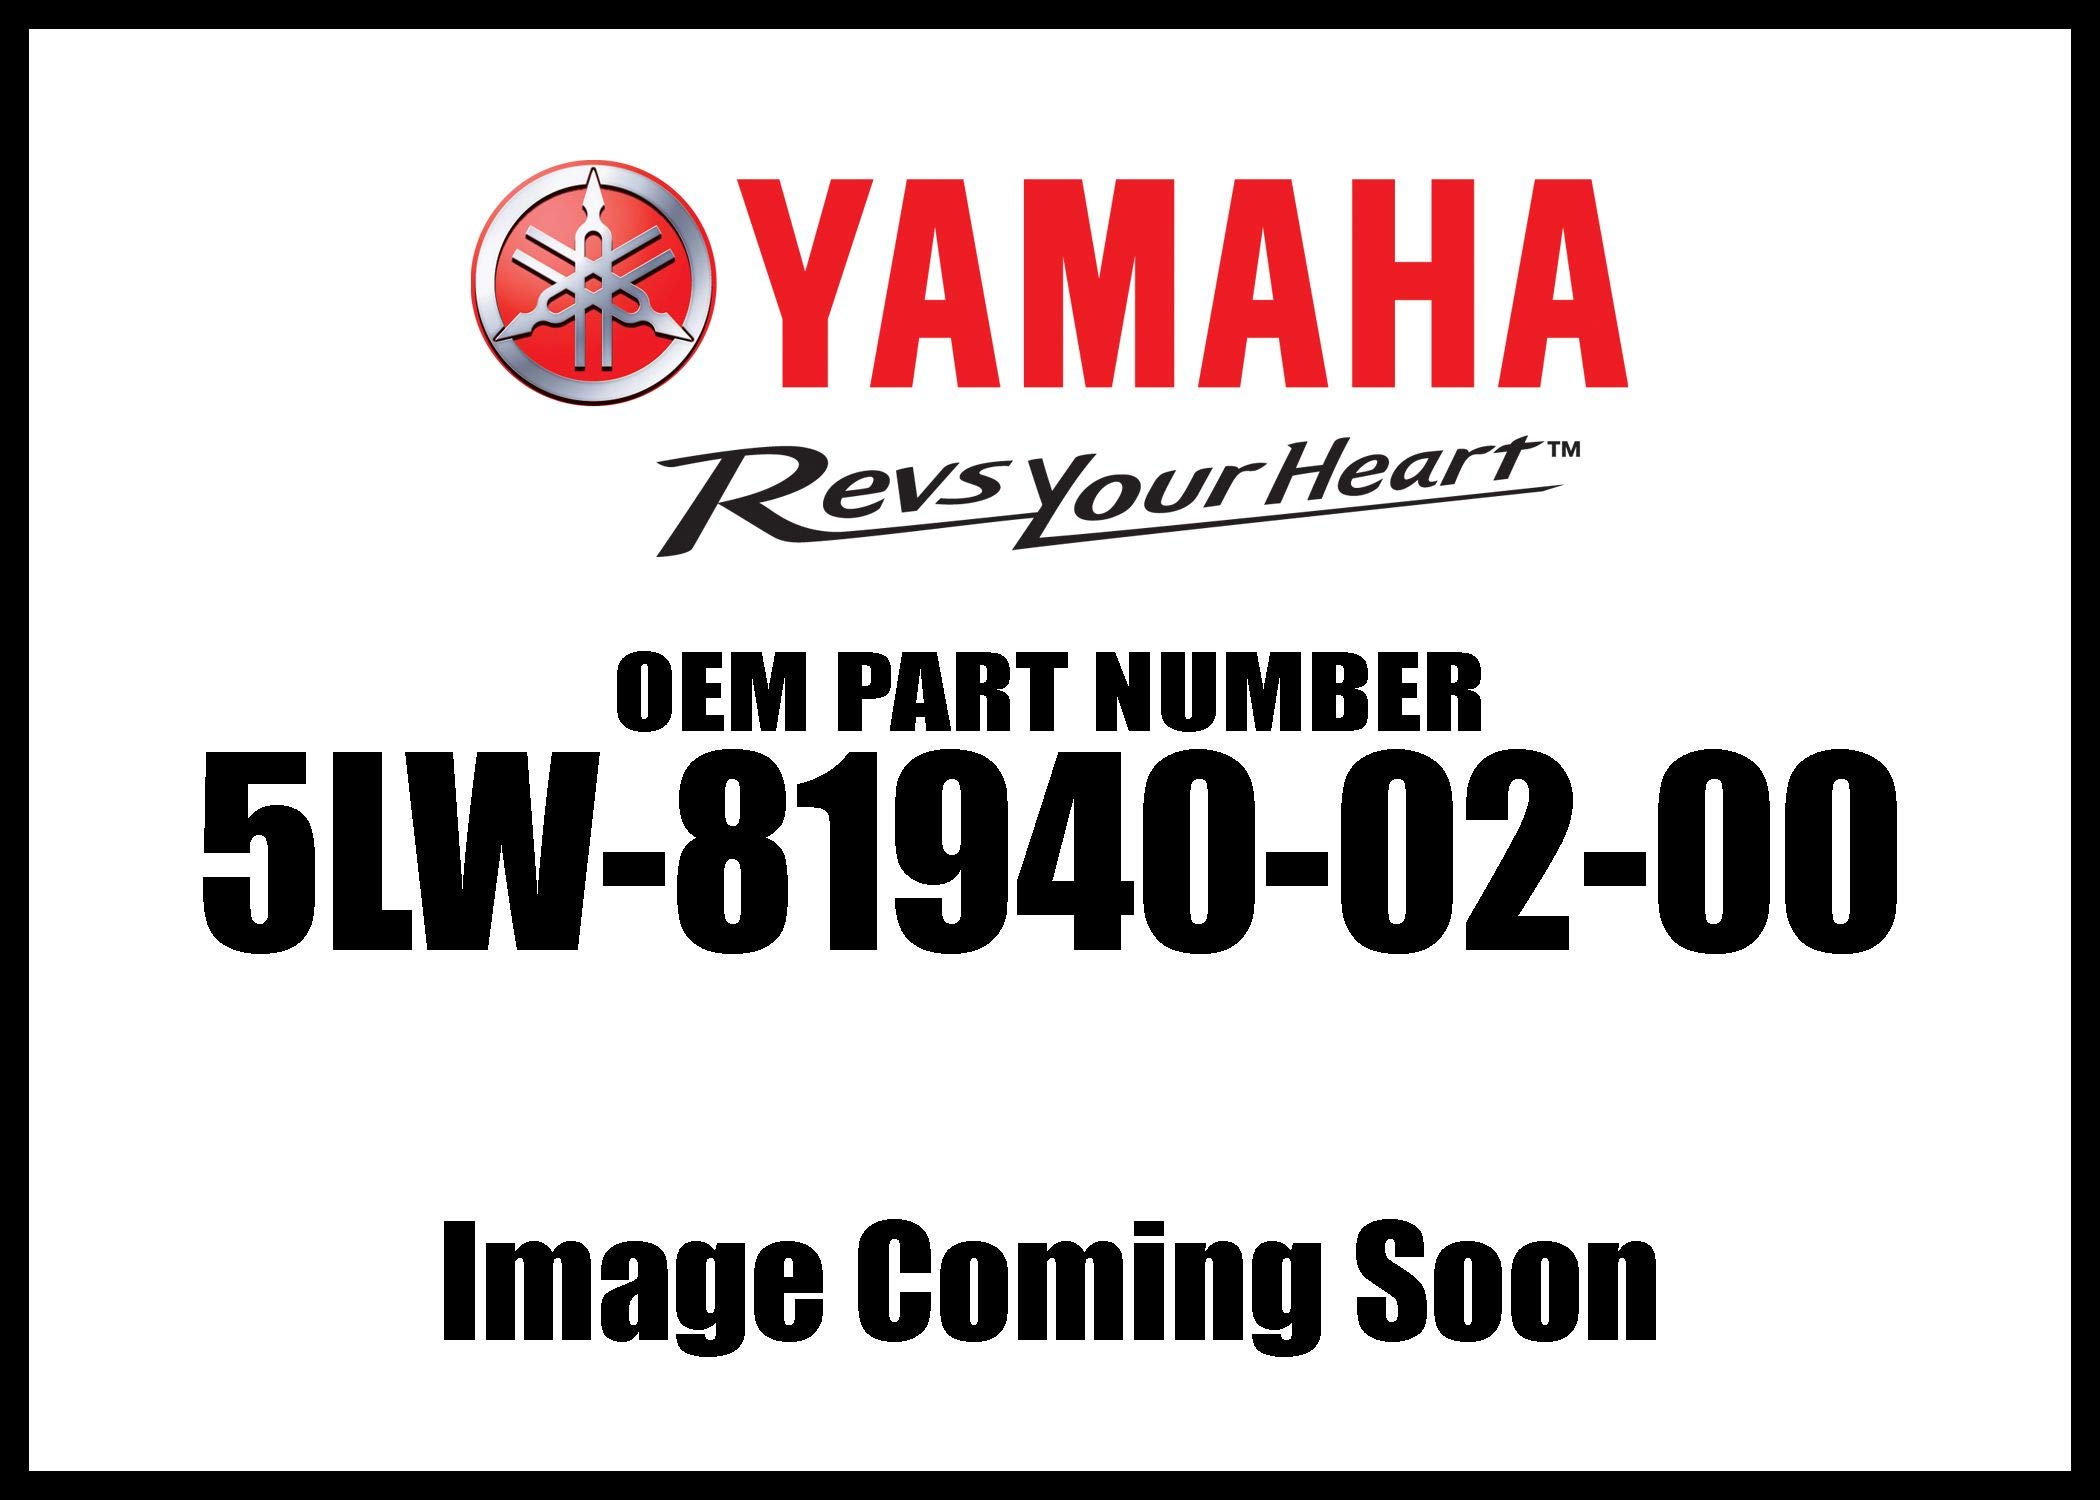 Yamaha 5LW-81940-02-00 Starter Relay Assy; ATV Motorcycle Snow Mobile Scooter Parts by Yamaha